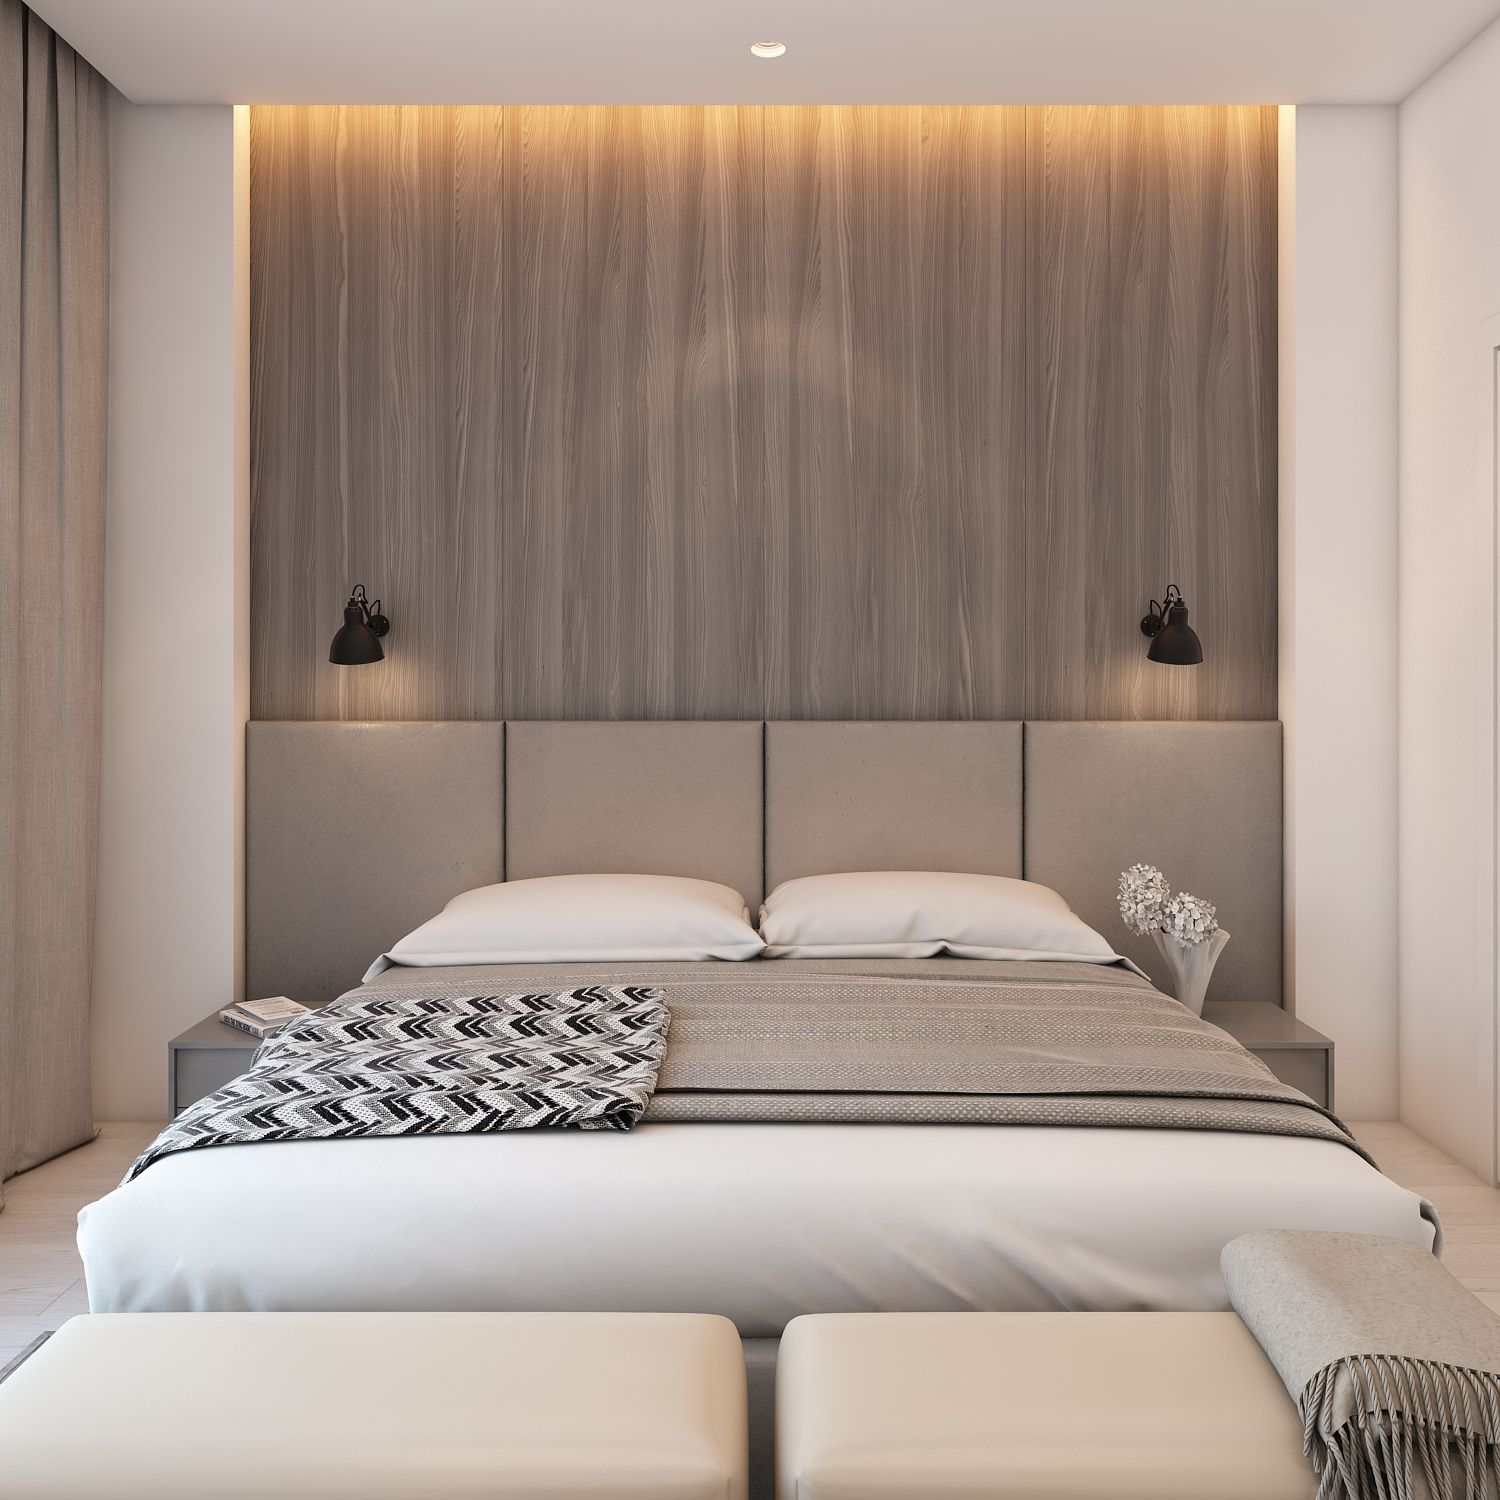 A simple modern apartment design with pastel